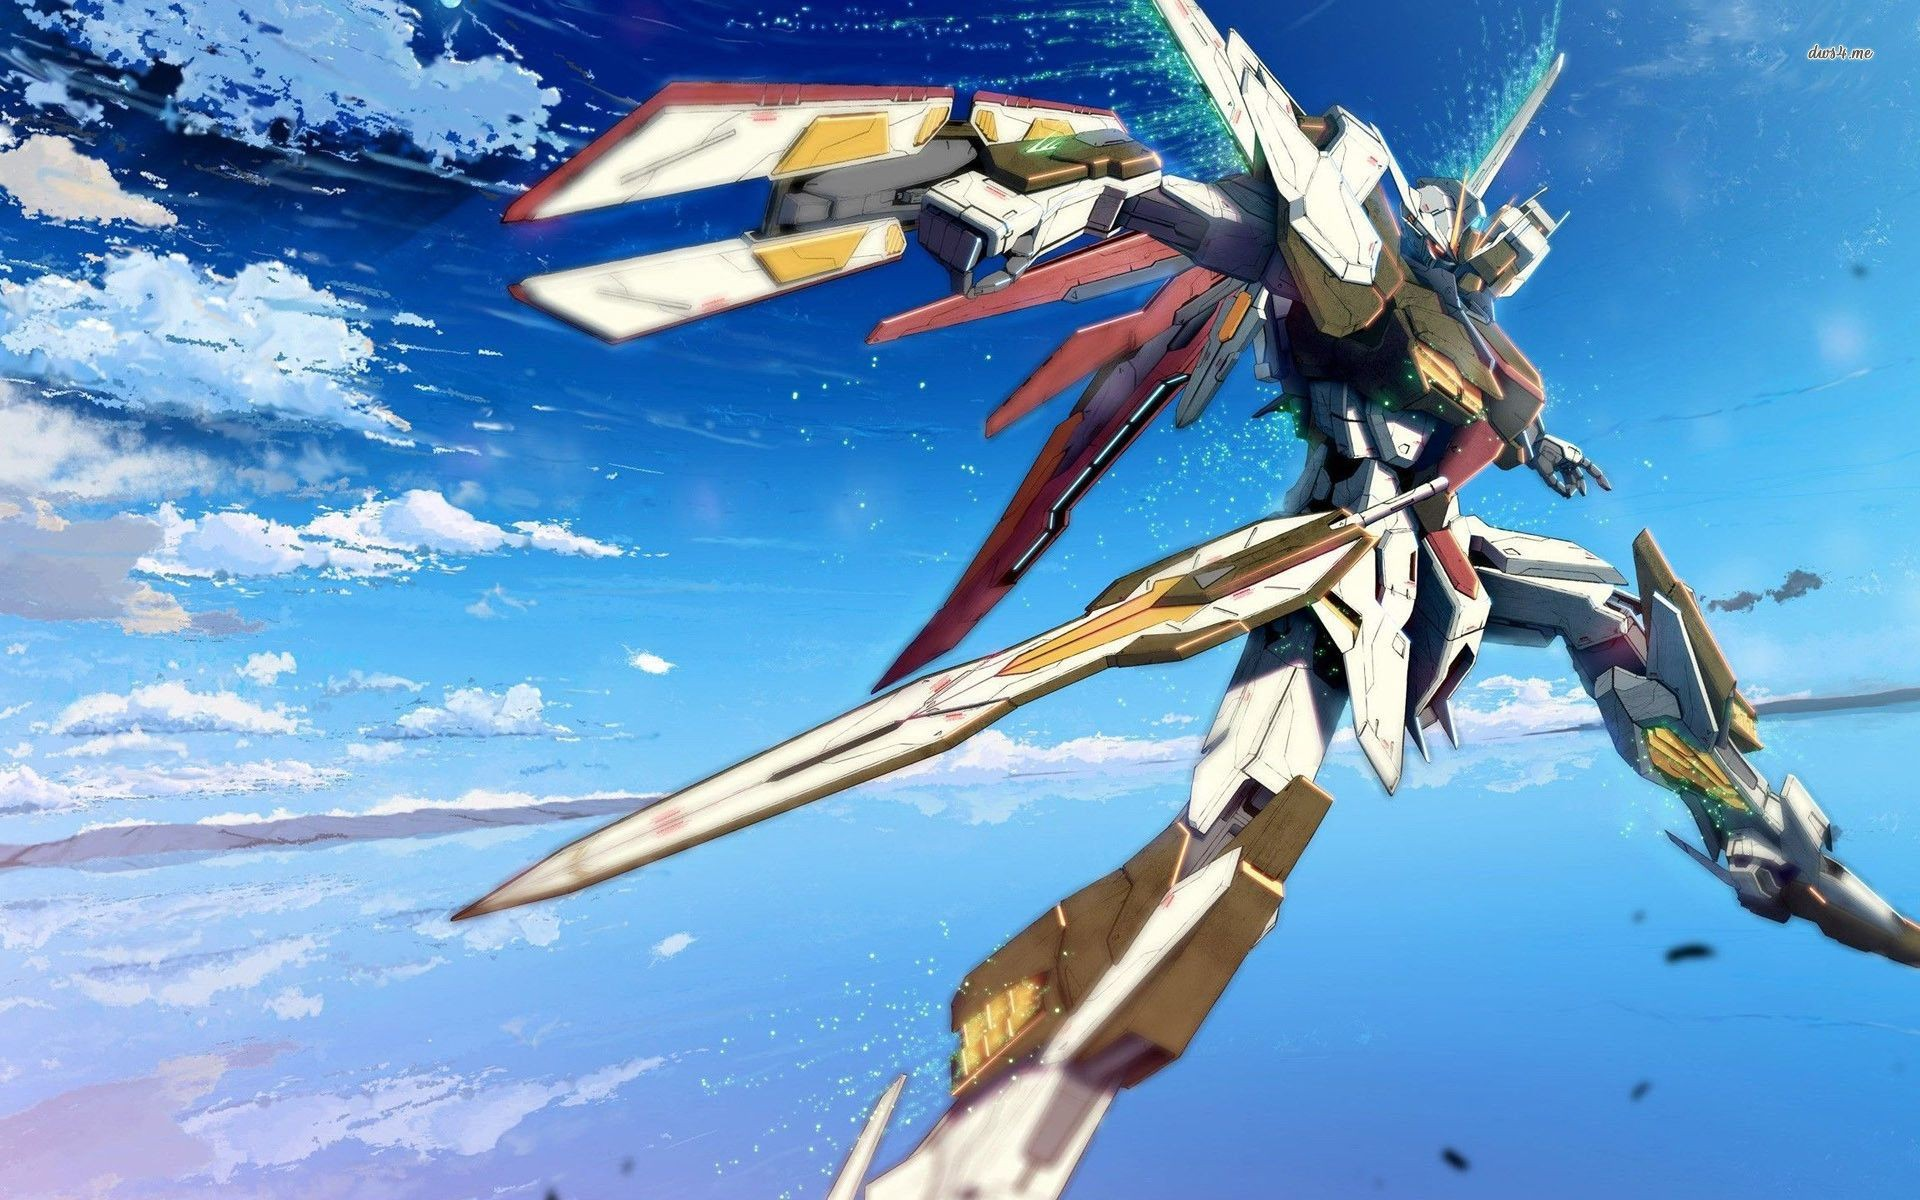 Gundam Barbatos wallpaper ·① Download free cool full HD